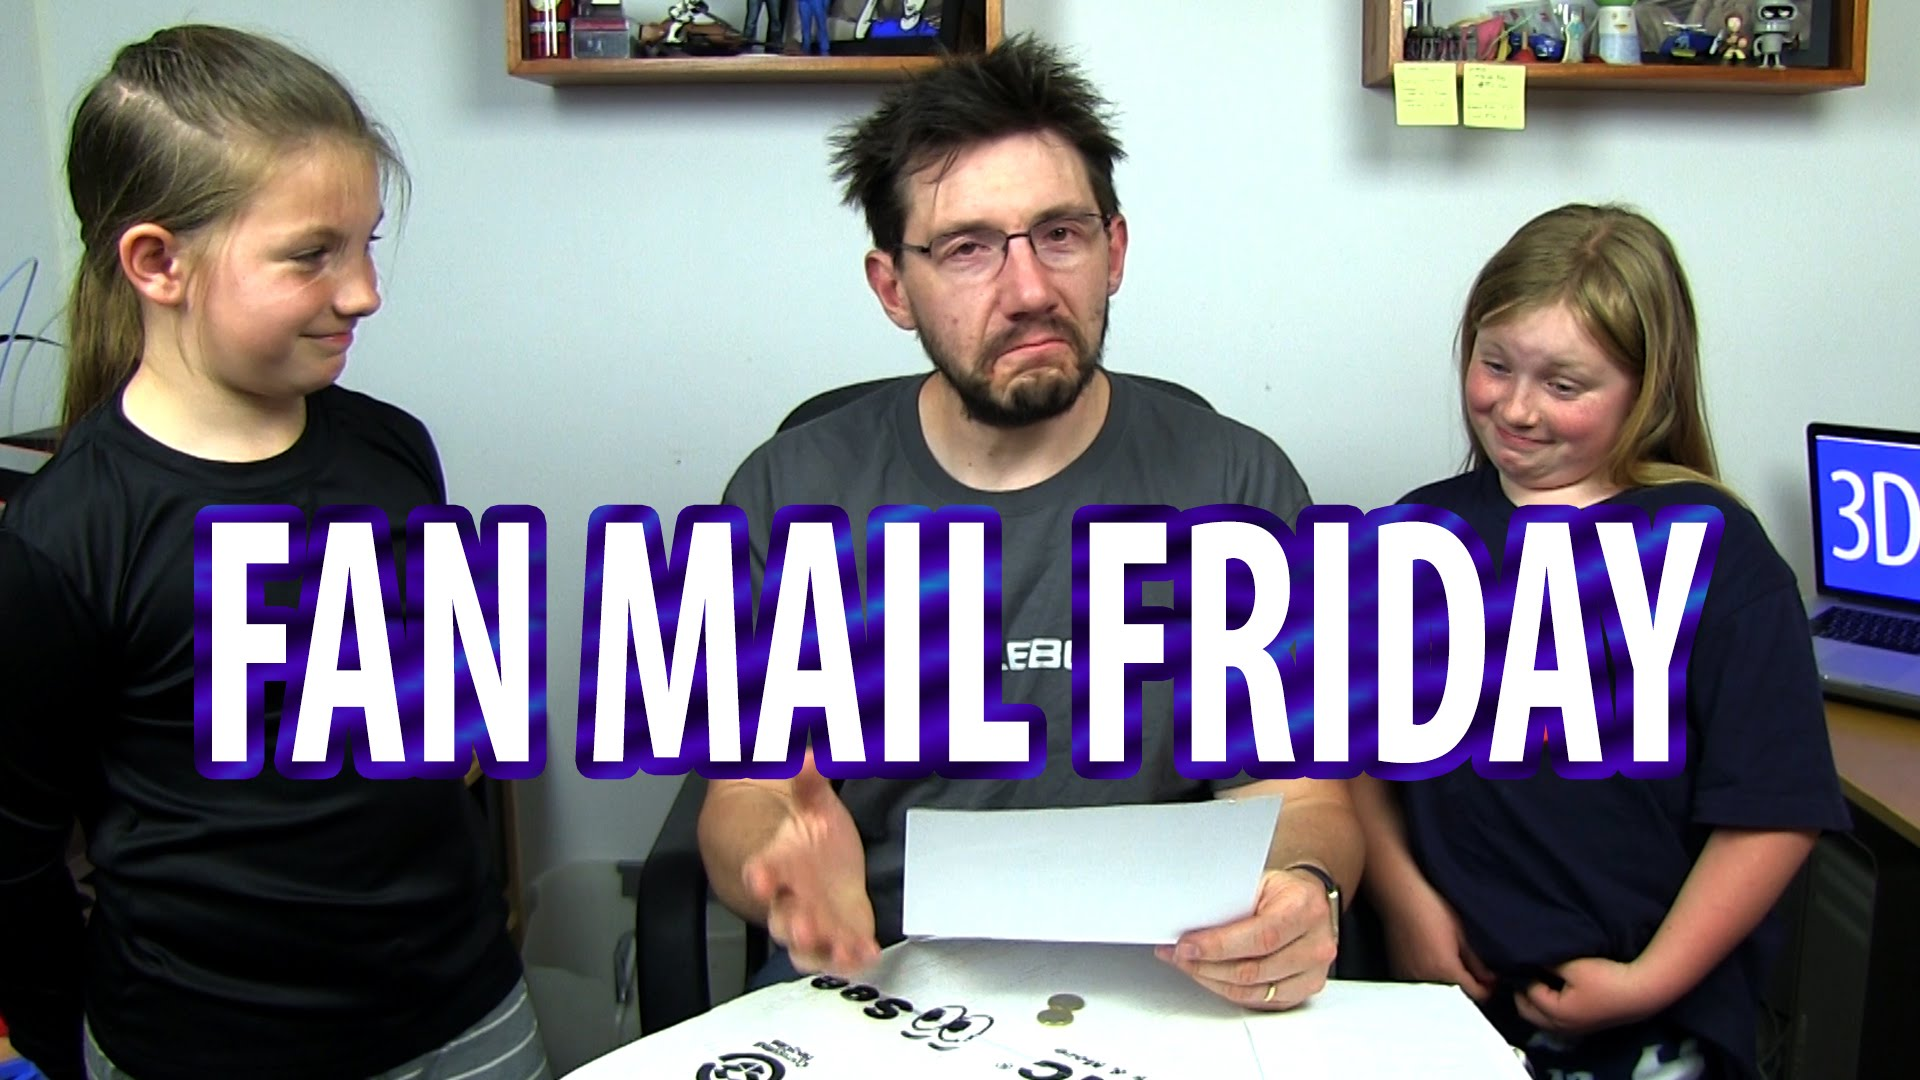 Fan Mail Friday 007 – Bring Your Daughter To Work Edition